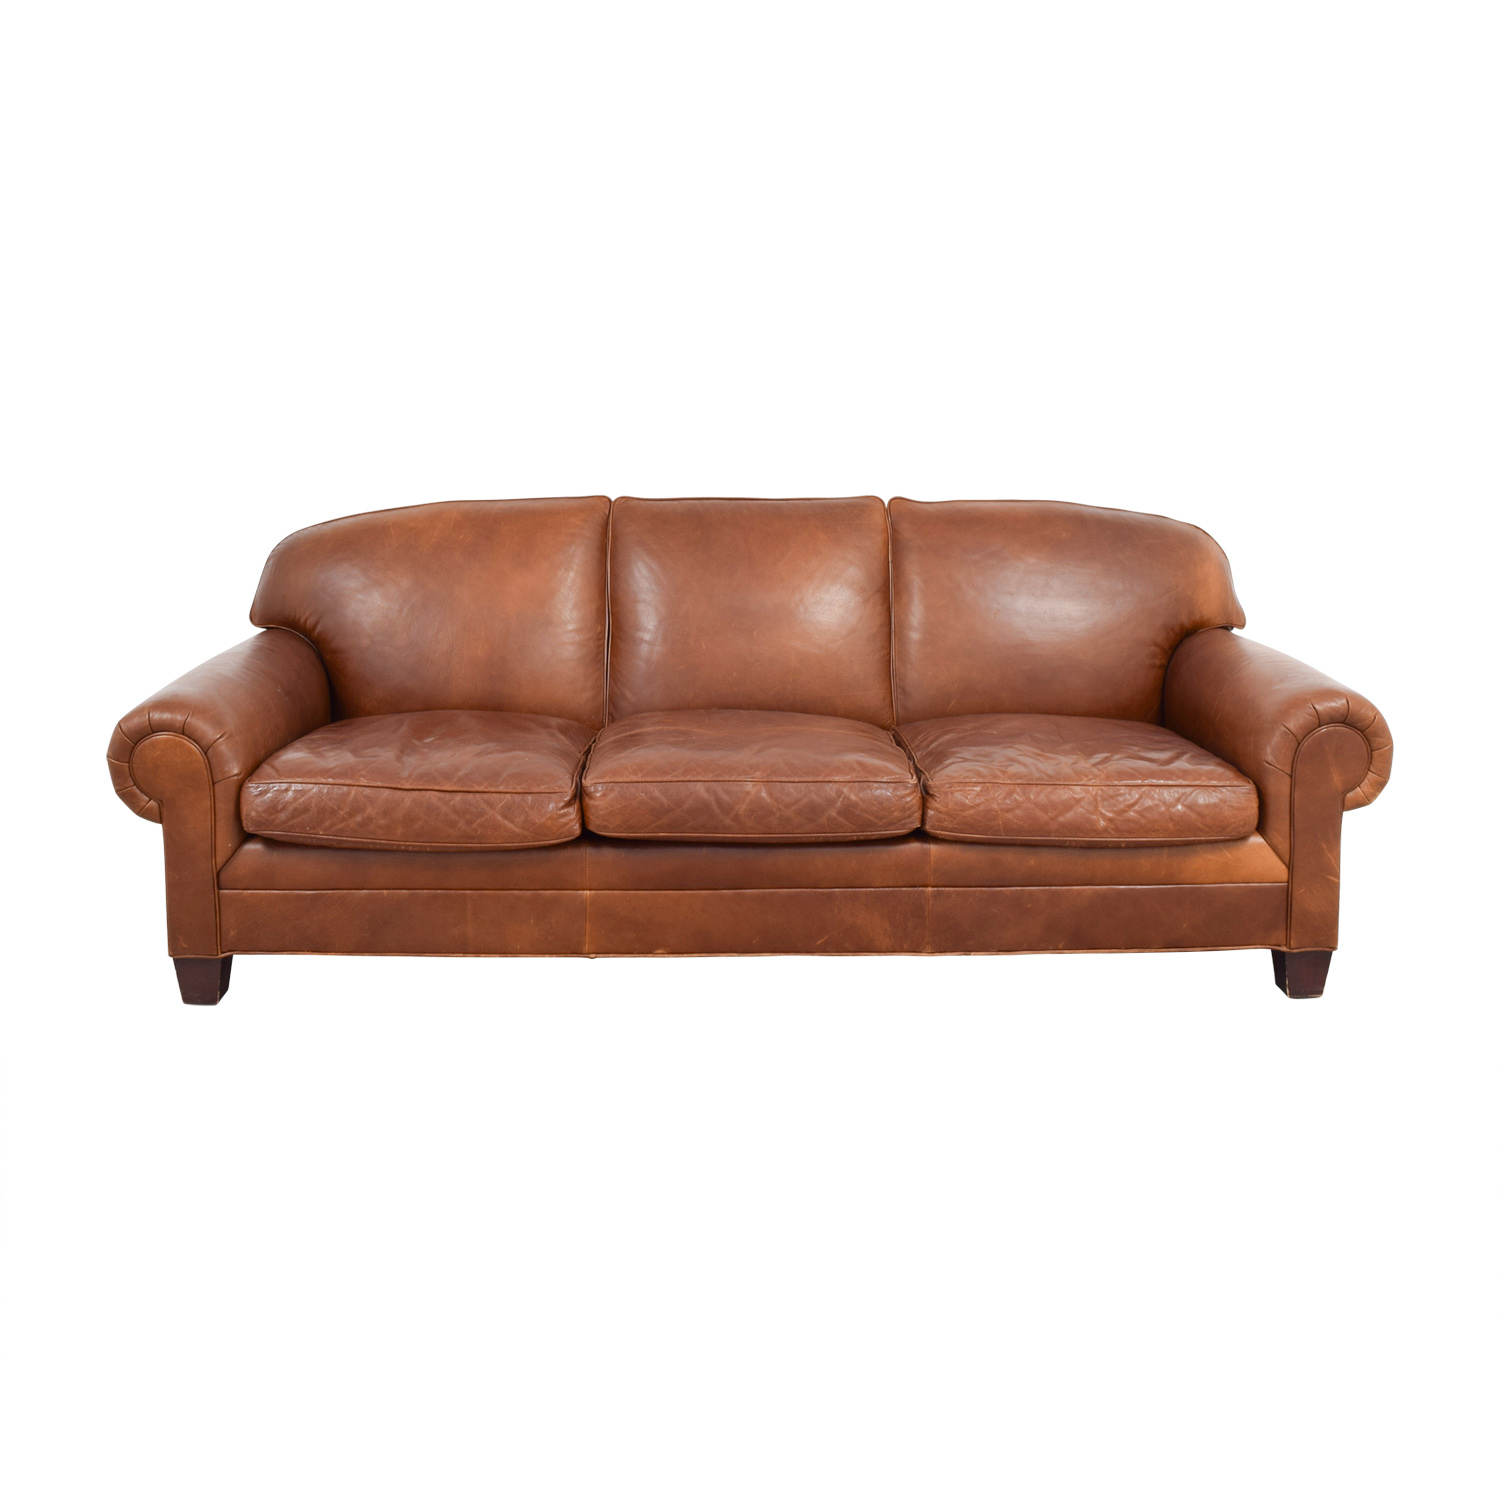 Surprising 90 Off Ralph Lauren Home Ralph Lauren Burnt Orange Leather Sofa Sofas Machost Co Dining Chair Design Ideas Machostcouk